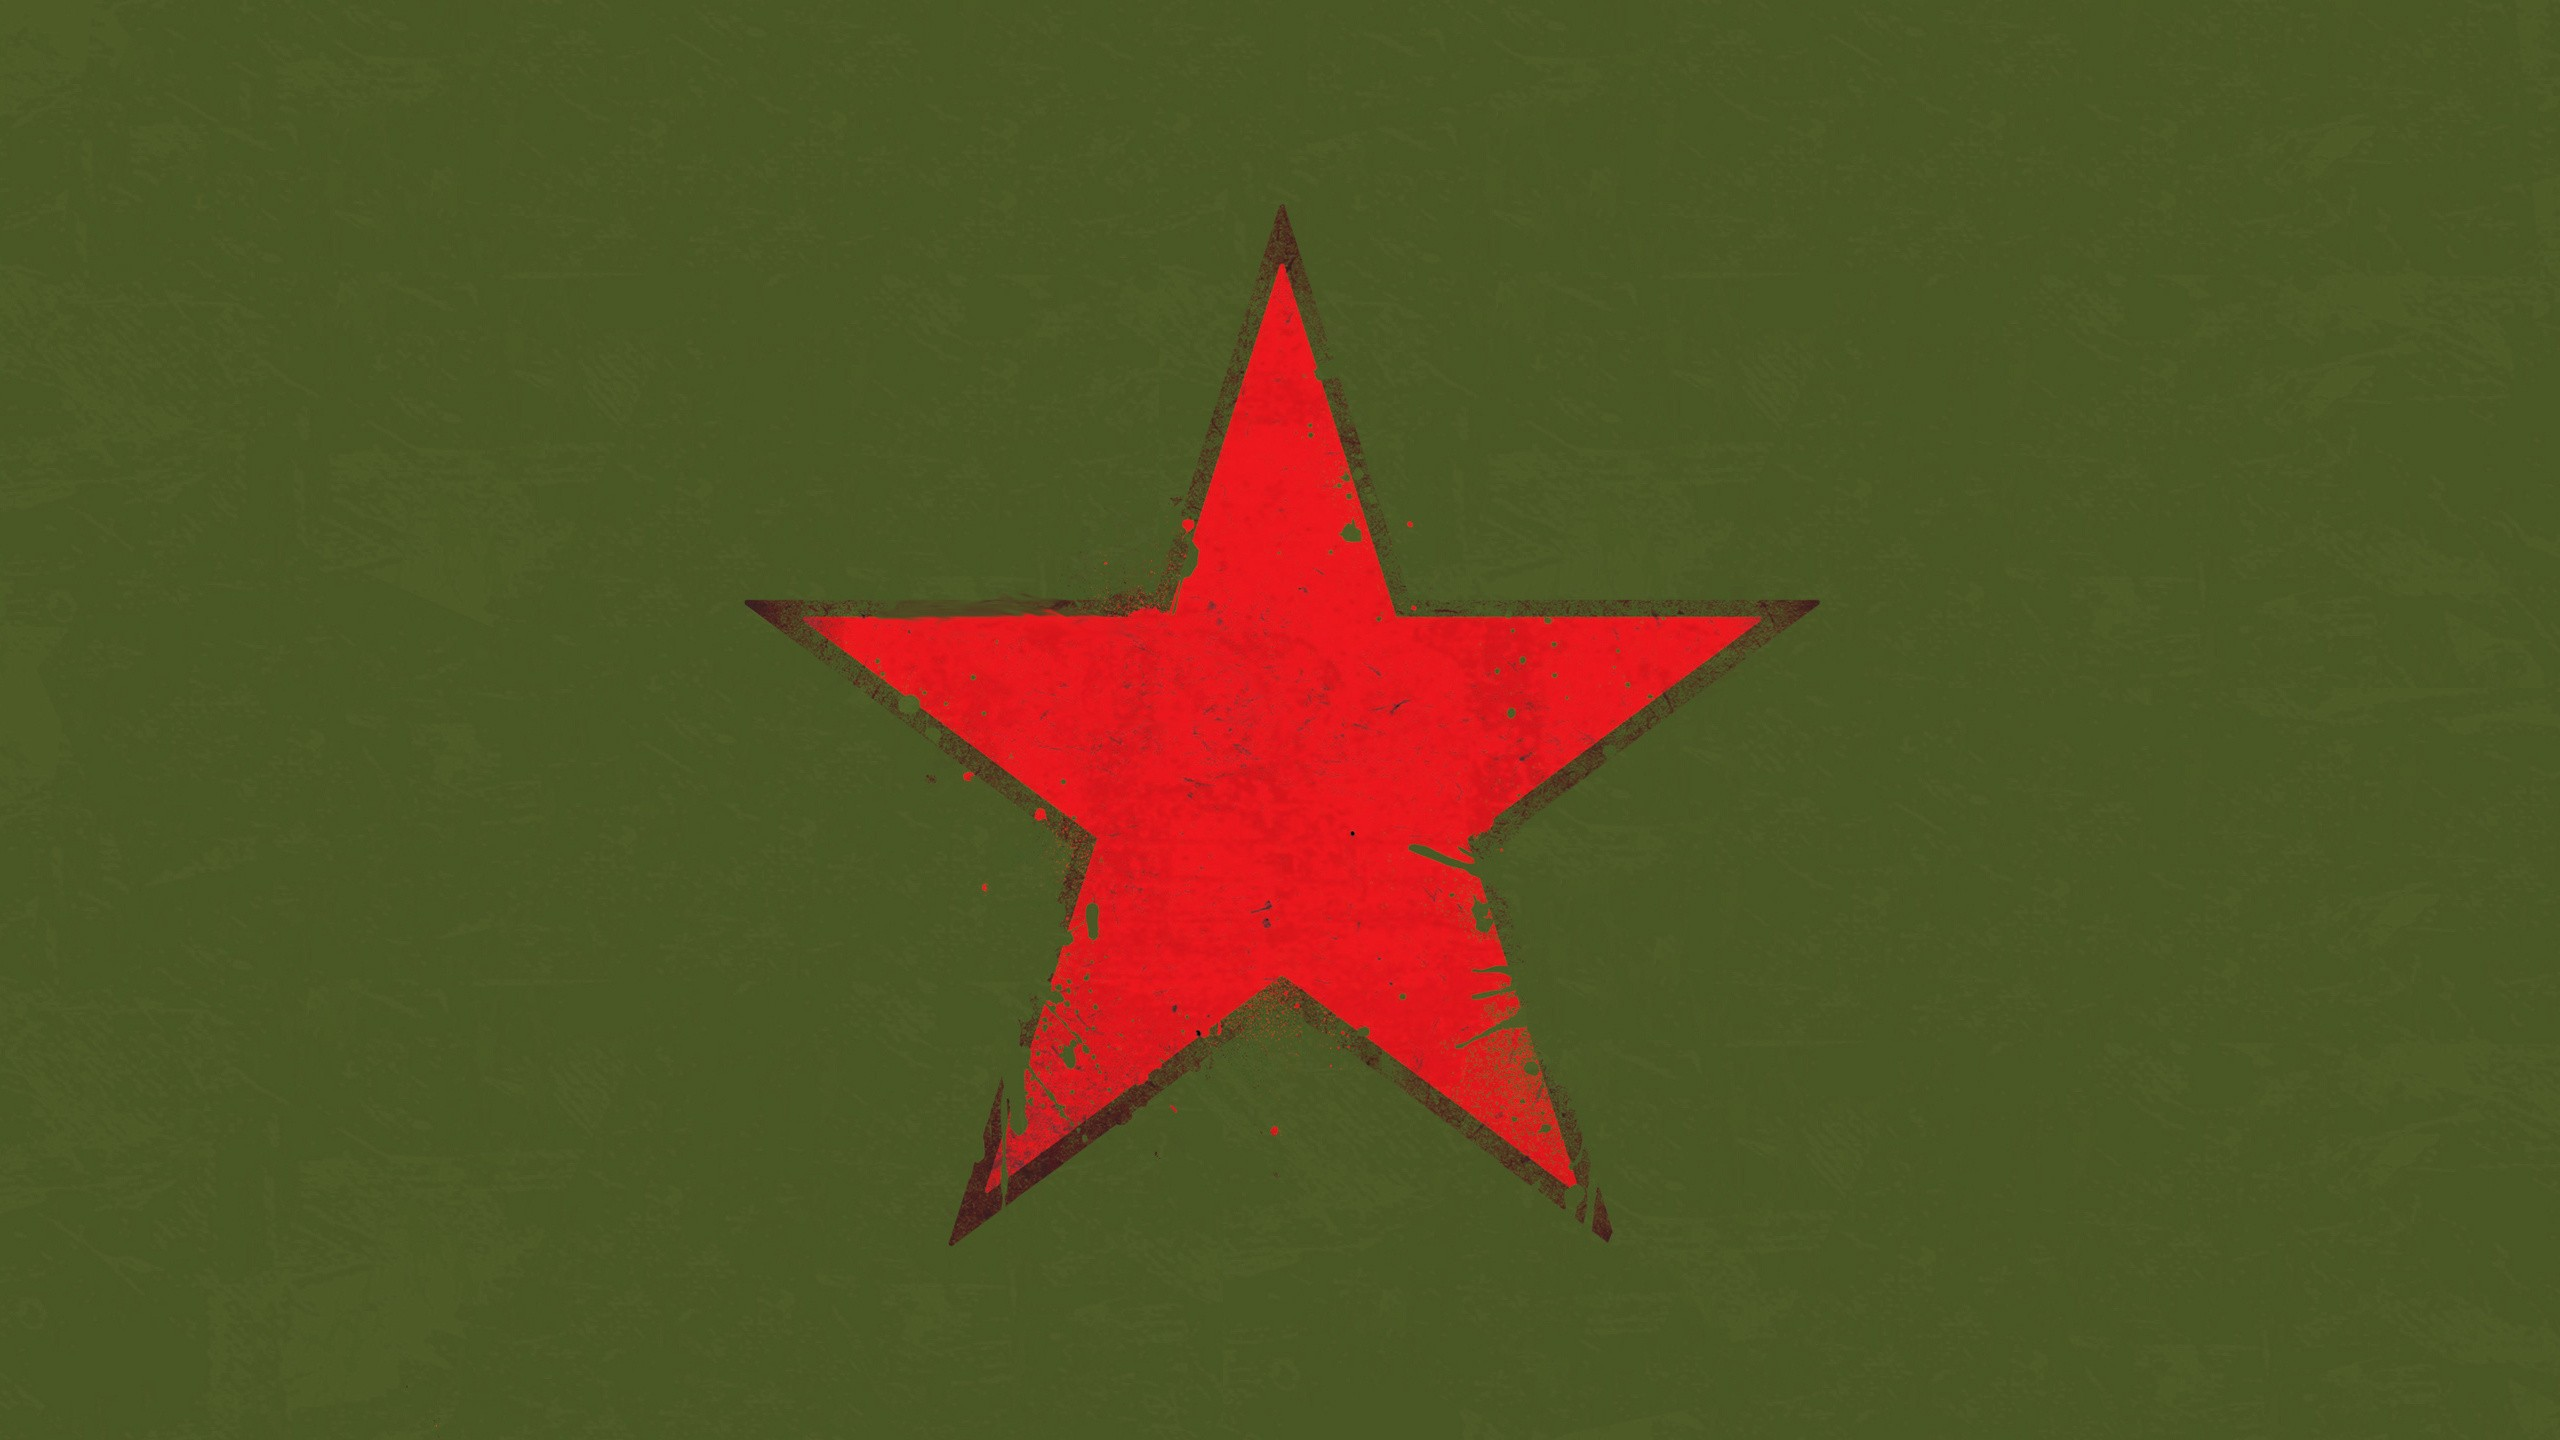 red star ussr green background digital art minimalism military splashes army stars cgi